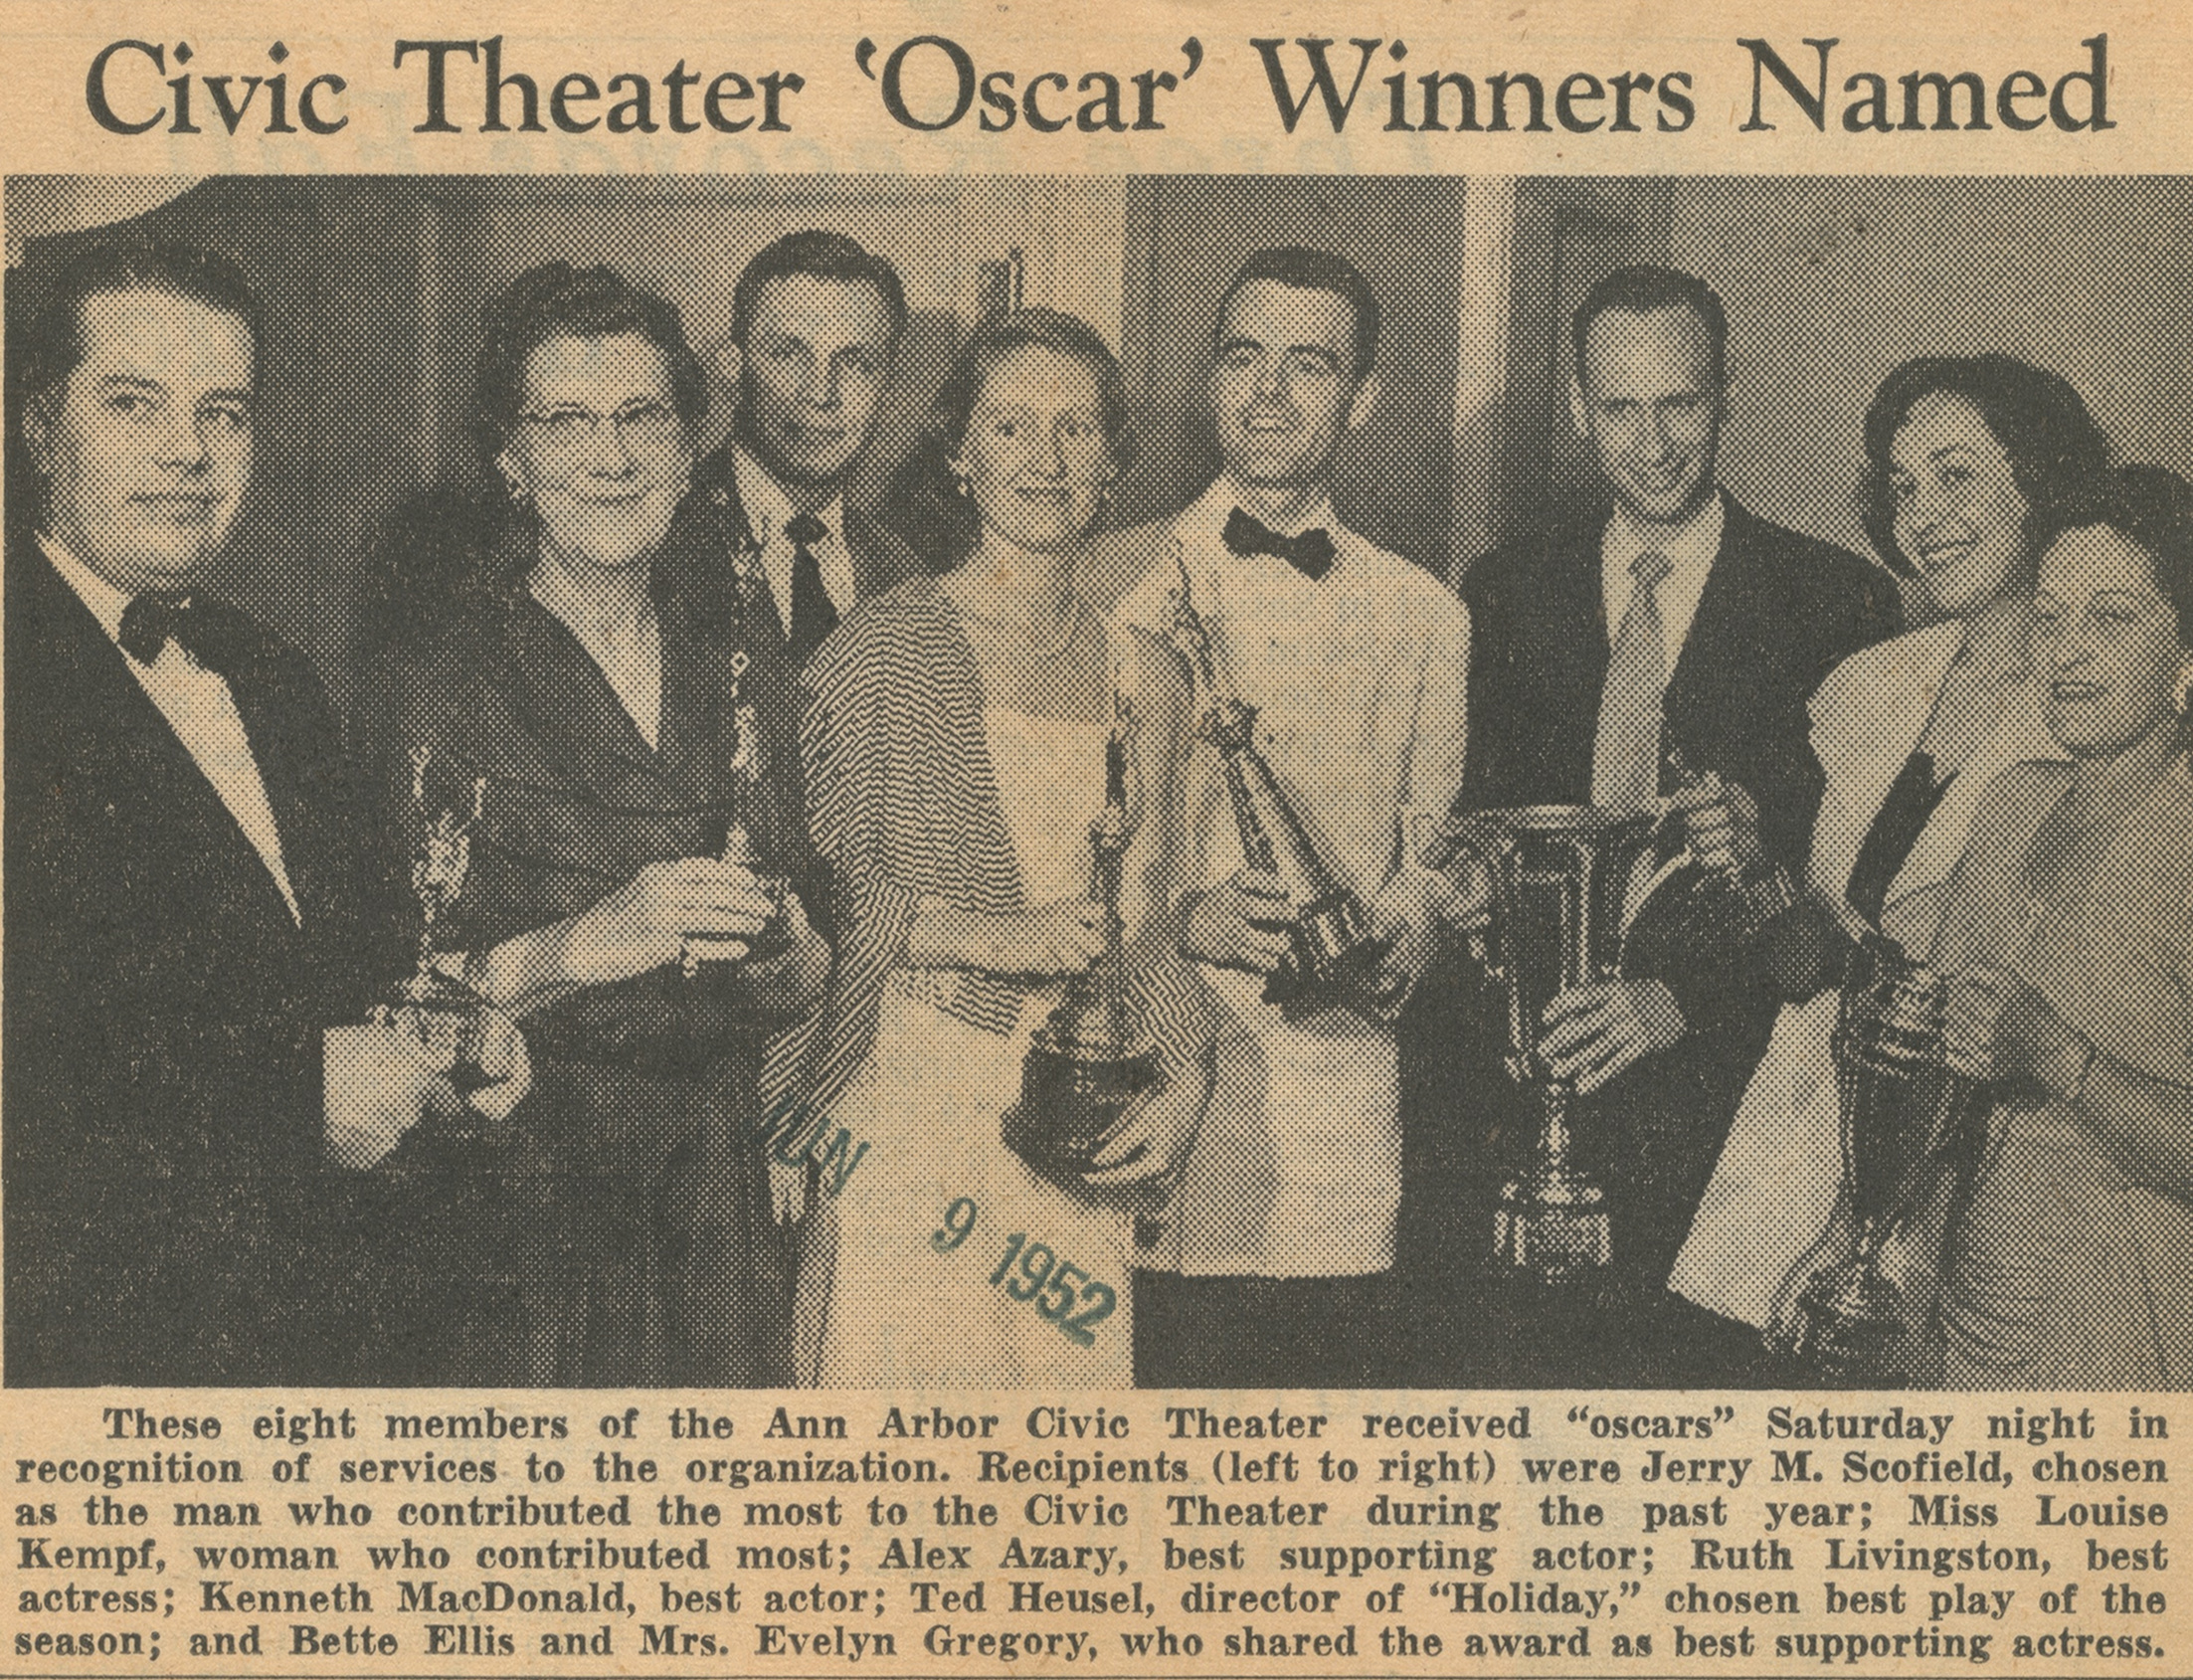 Civic Theater 'Oscar' Winners Named image